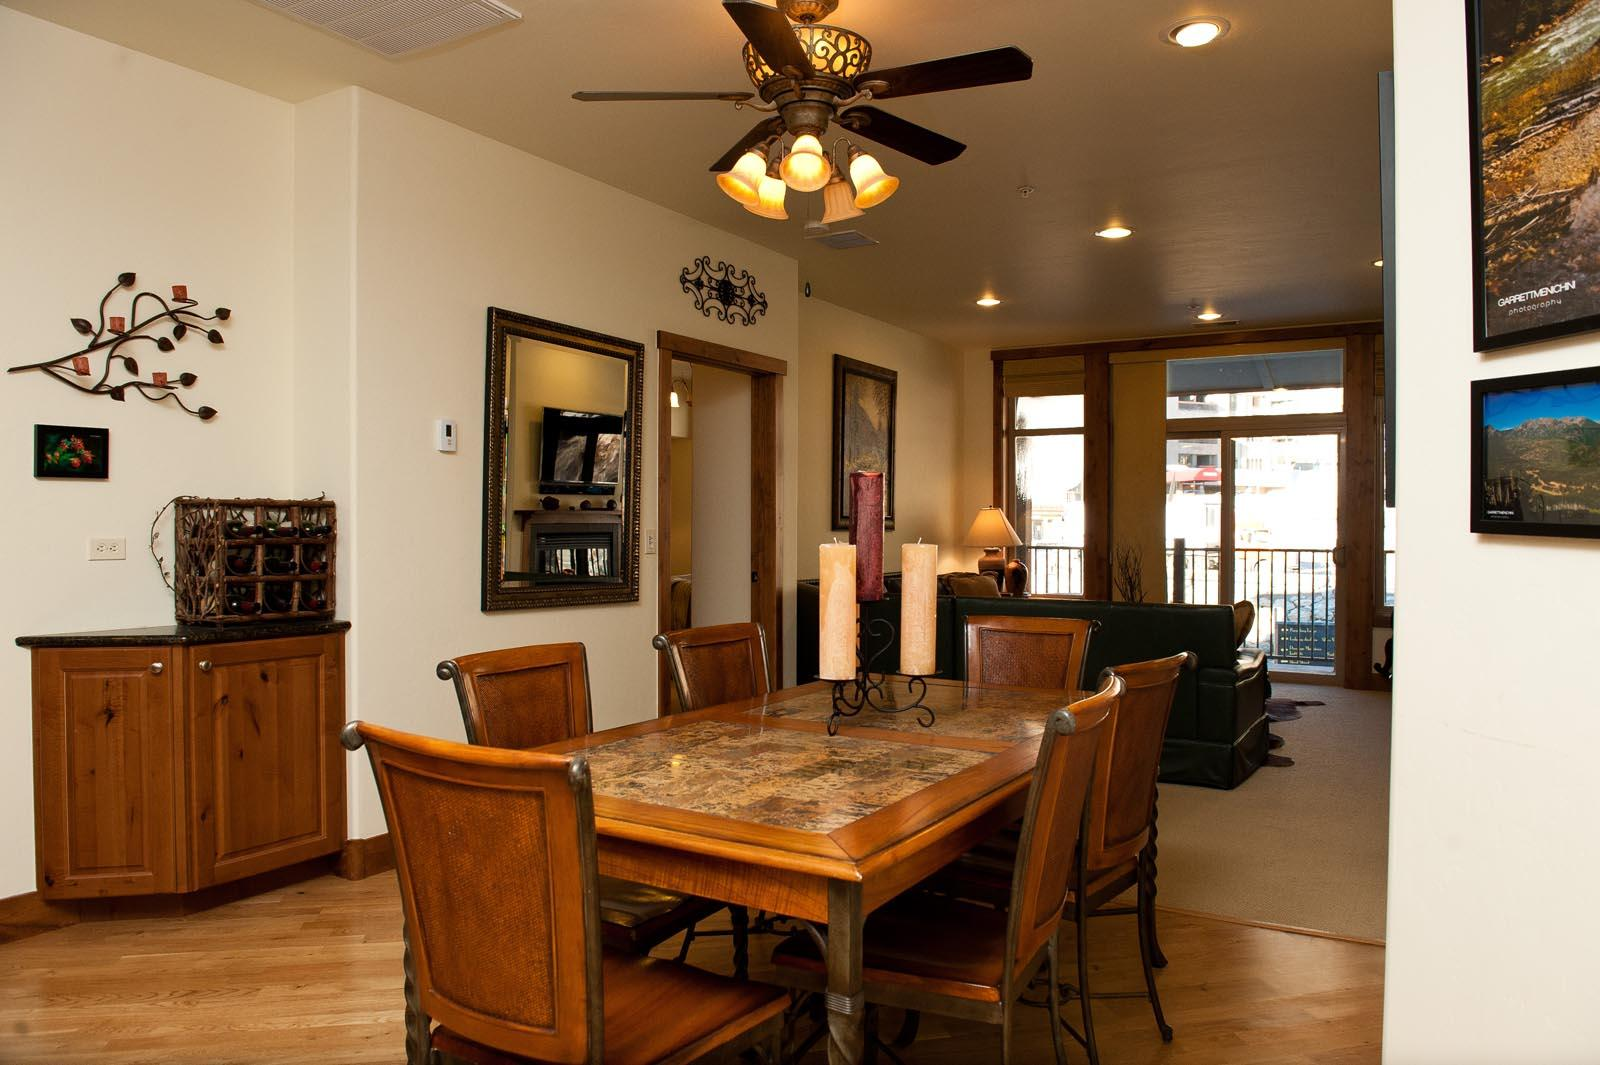 Property Image 2 - Luxury Condo Near Main Resort Plaza - Walk to Ski Slopes - Gas Grill